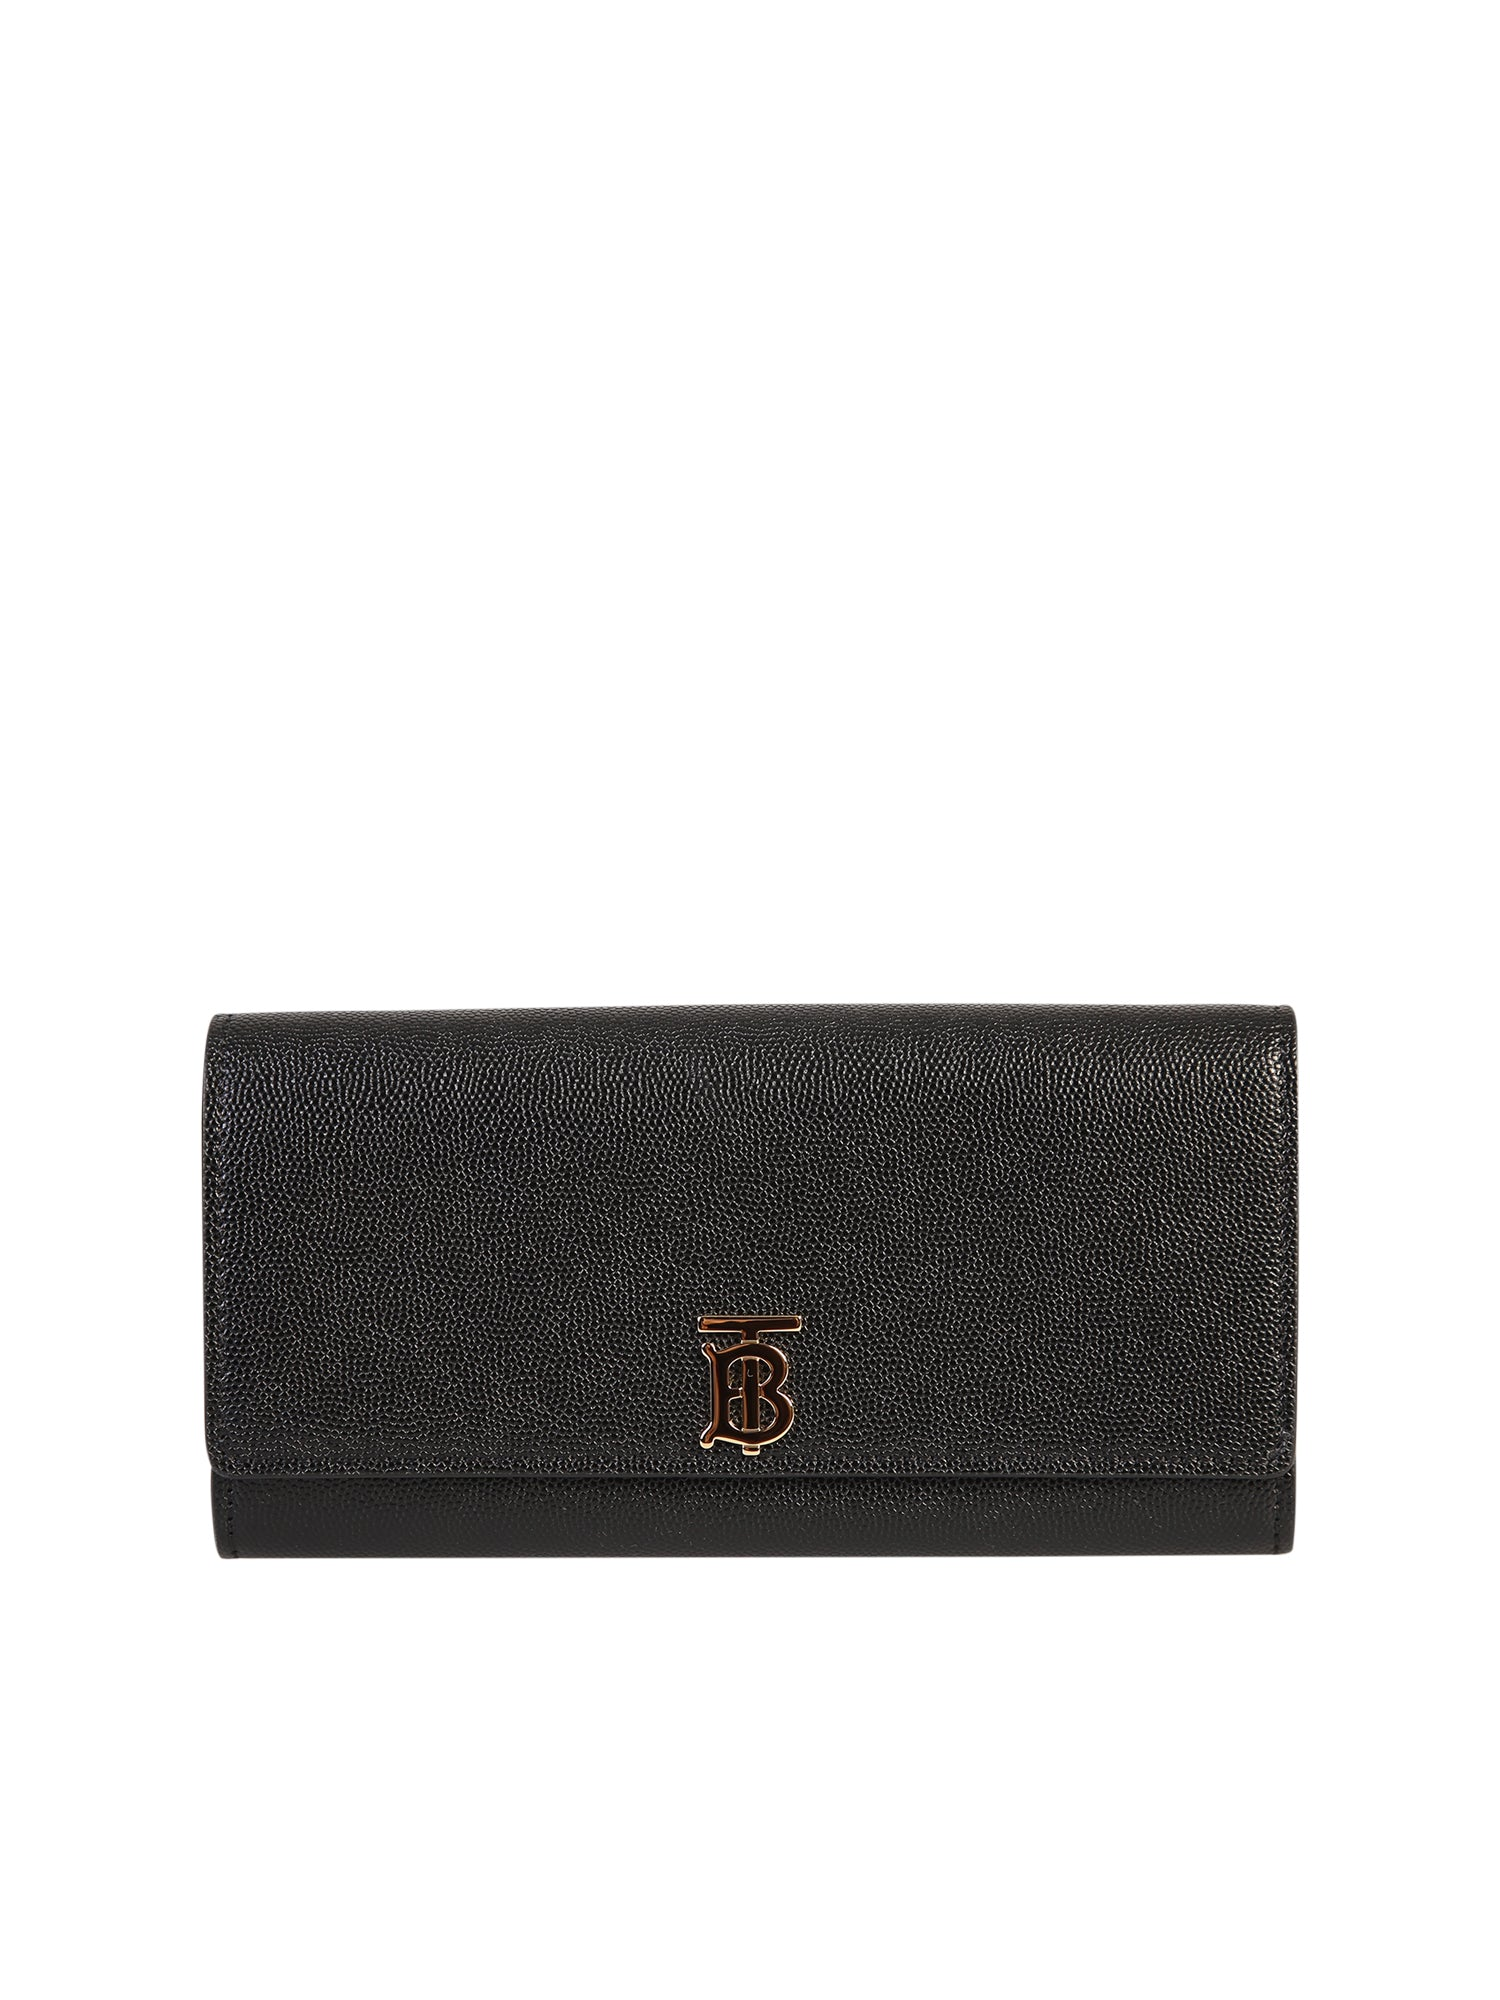 Burberry BURBERRY MONOGRAM MOTIF CONTINENTAL WALLET